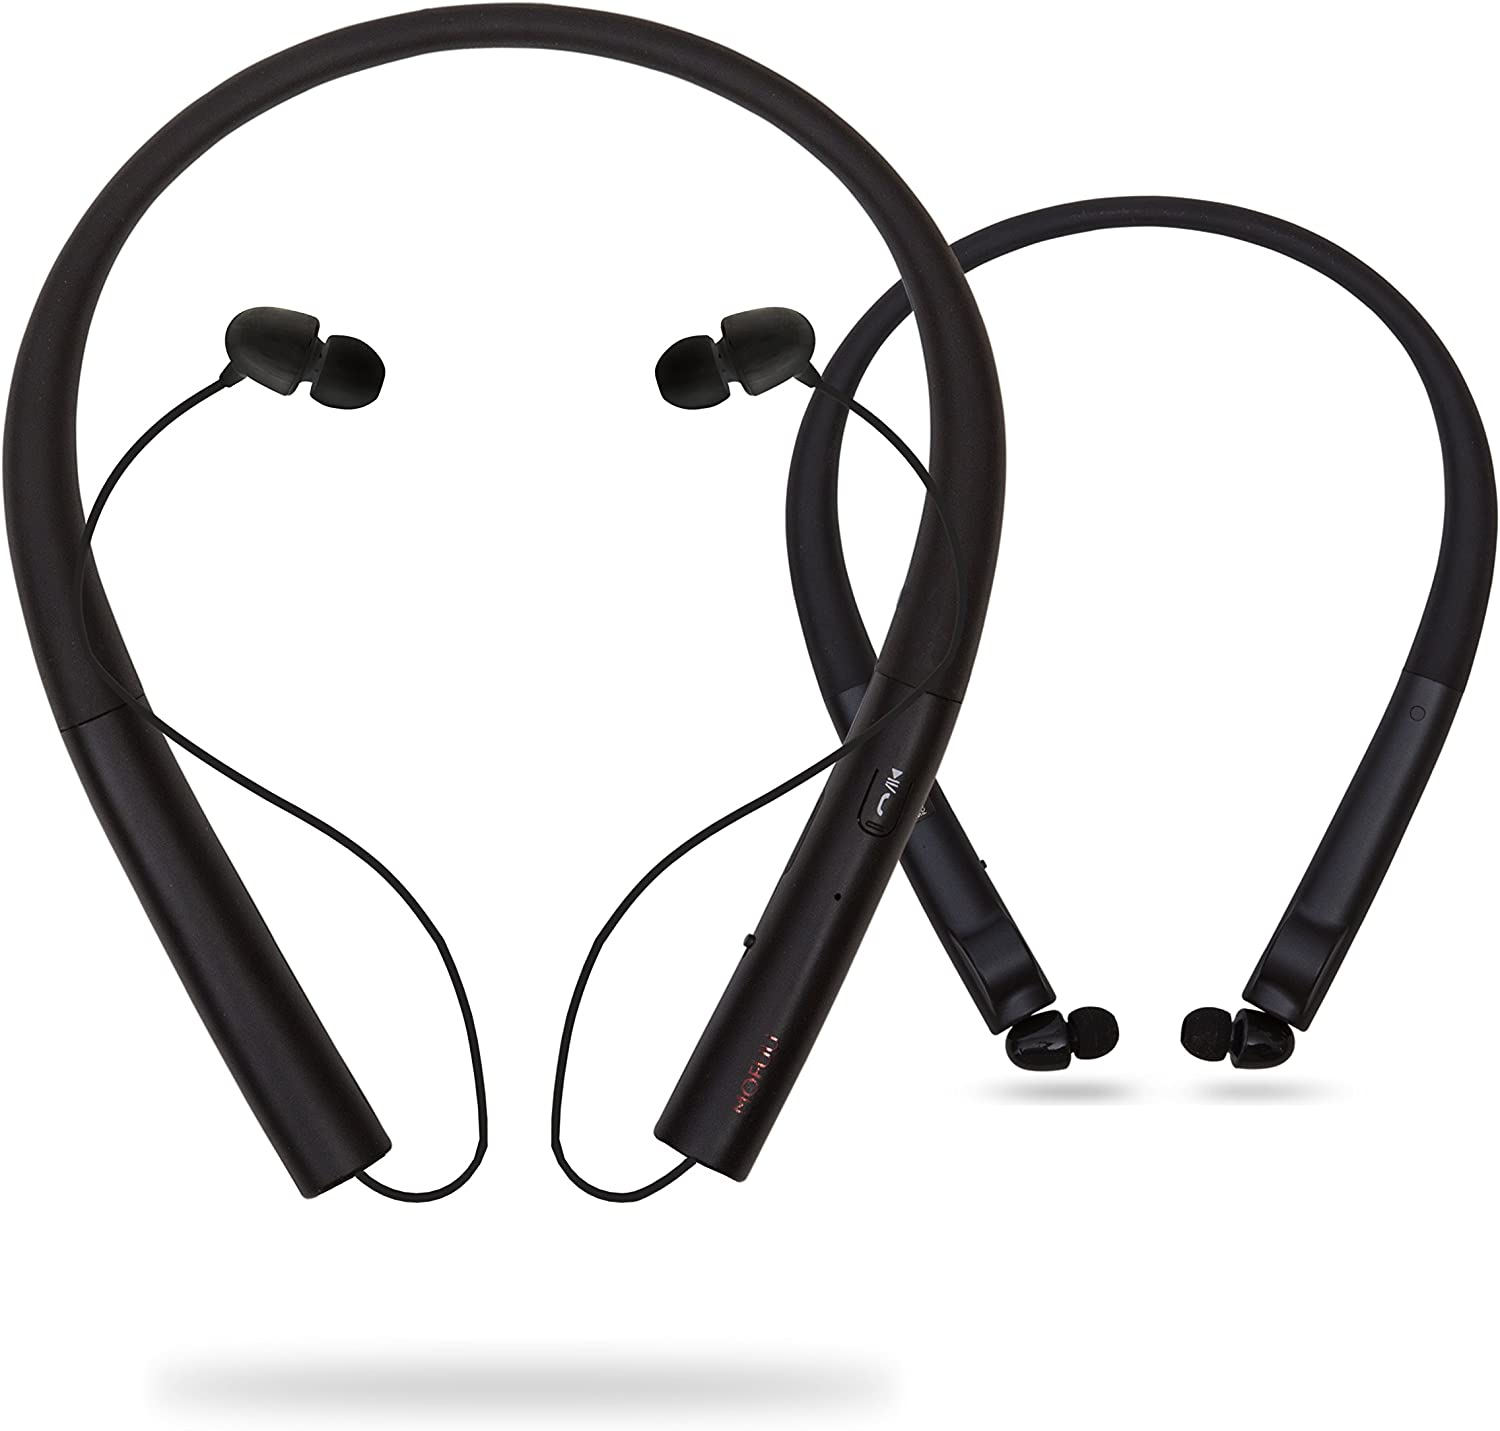 Retractable HiFi Premium Stereo Wireless Headphones with Retractable Earbuds for Cell Phones or Other Wireless Devices with Mic by Mofuu (Black)